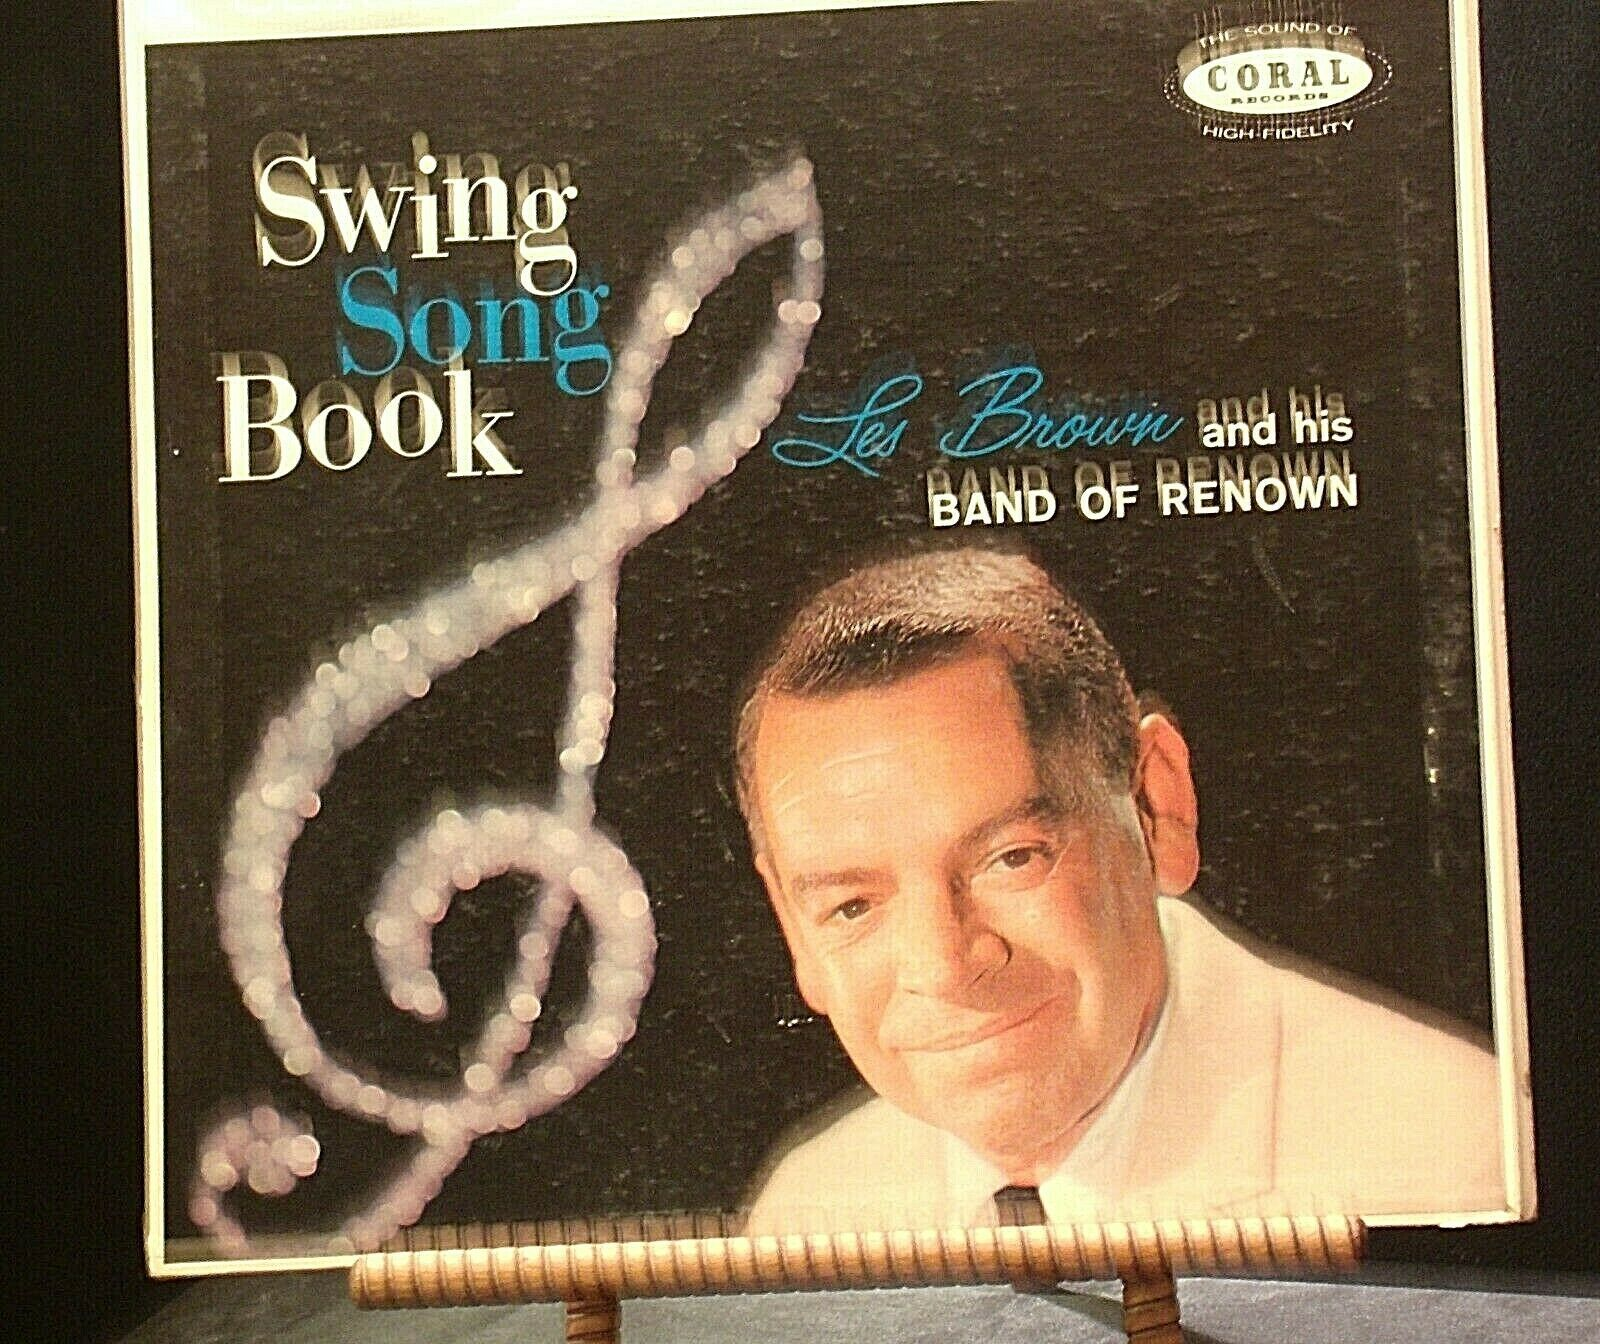 Les Brown And His Band Of Renown – Swing Song Book AA20-RC2113 Vintage